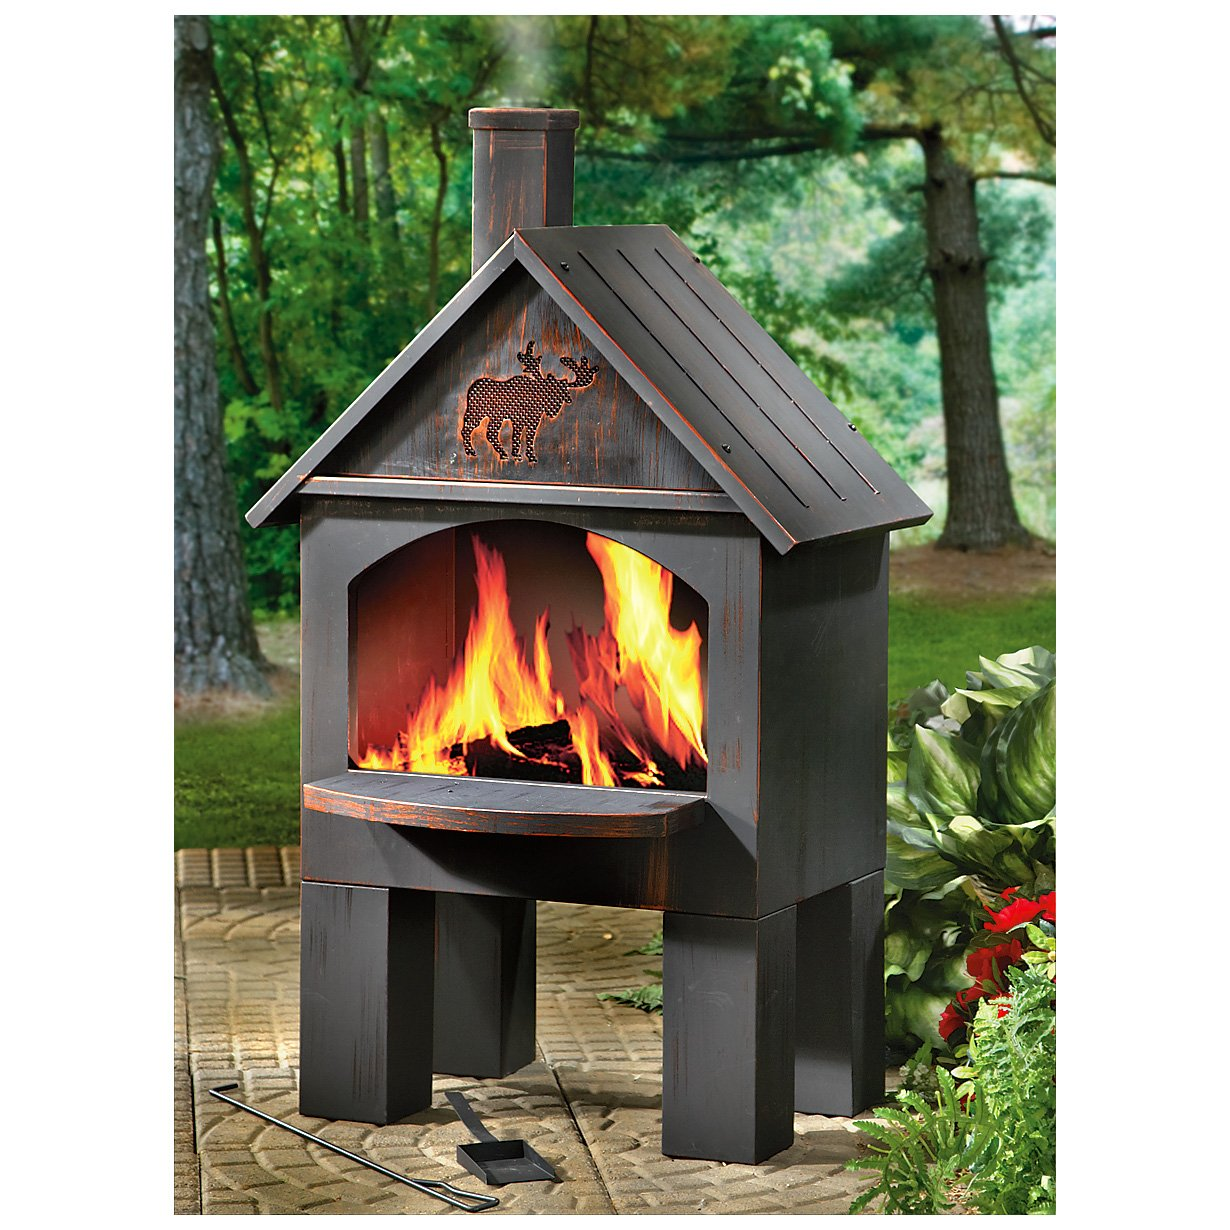 Wood cooking outdoor fireplace bbq grill fire pit deck patio ebay